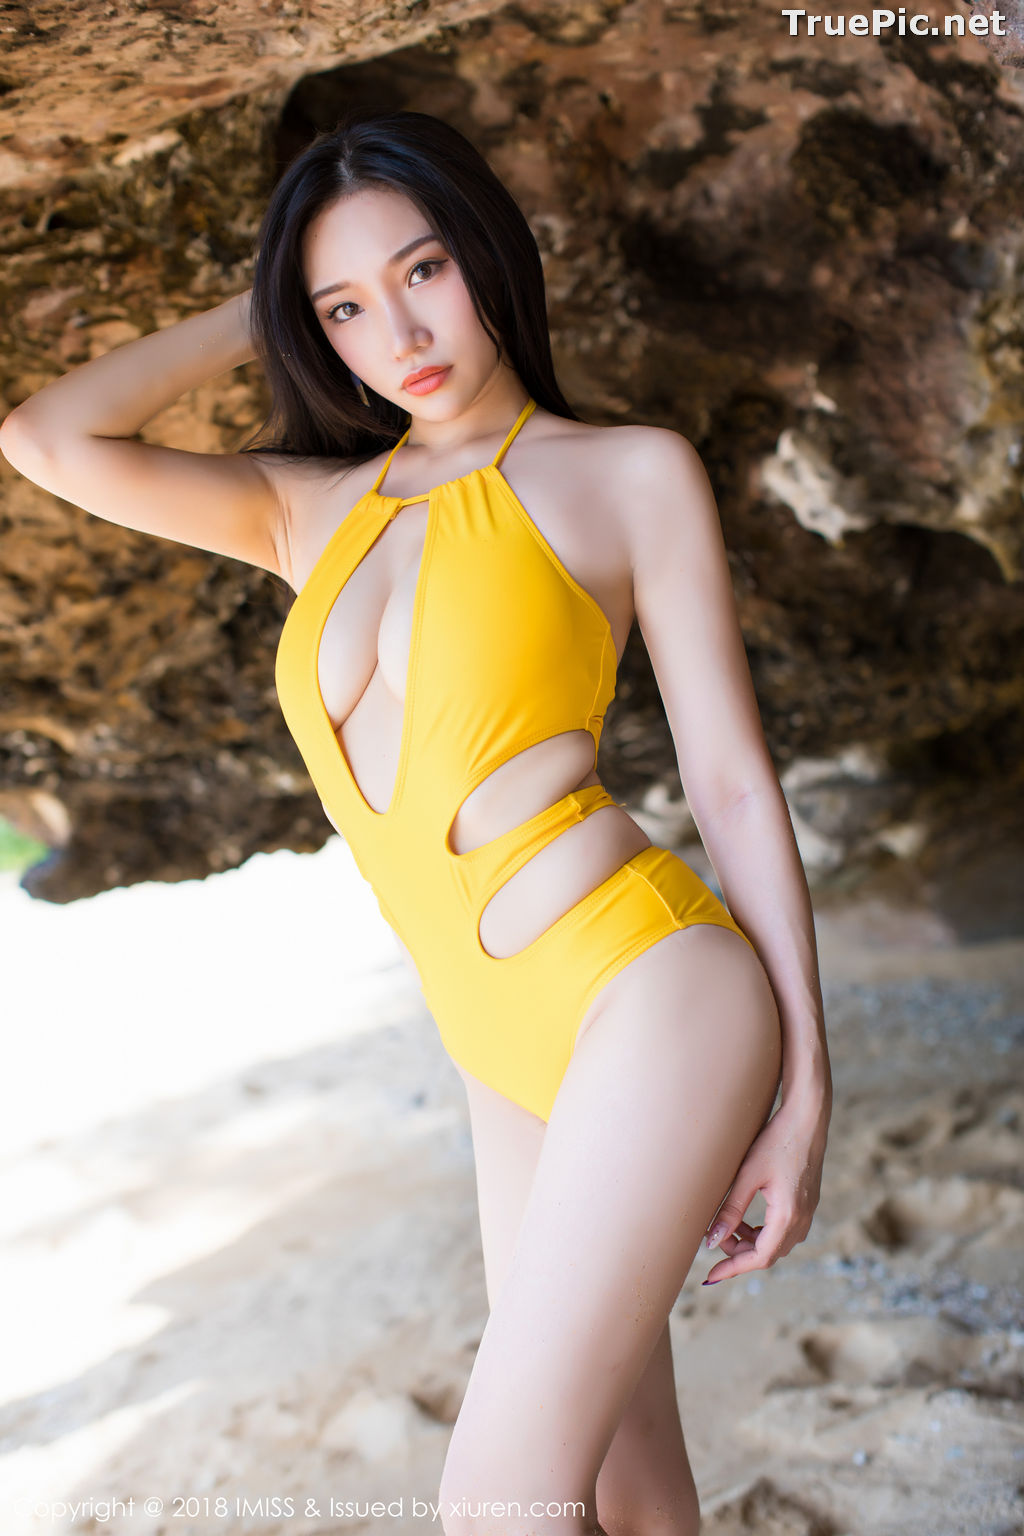 Image IMISS Vol.227 - Chinese Model Xiao Hu Li (小狐狸Sica) - Bikini On the Beach - TruePic.net - Picture-7